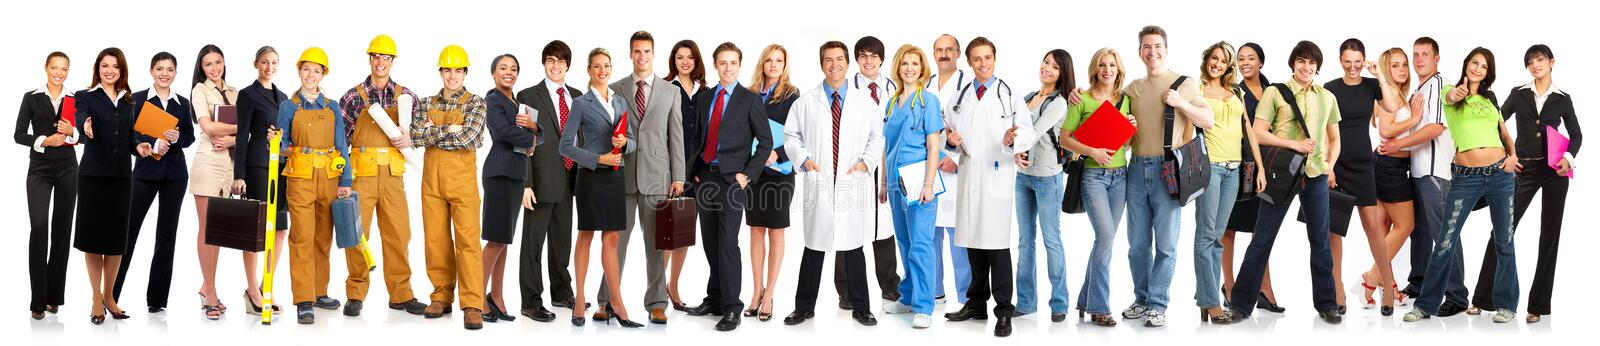 Download Businessman stock image. Image of education, manager, smile - 9687877